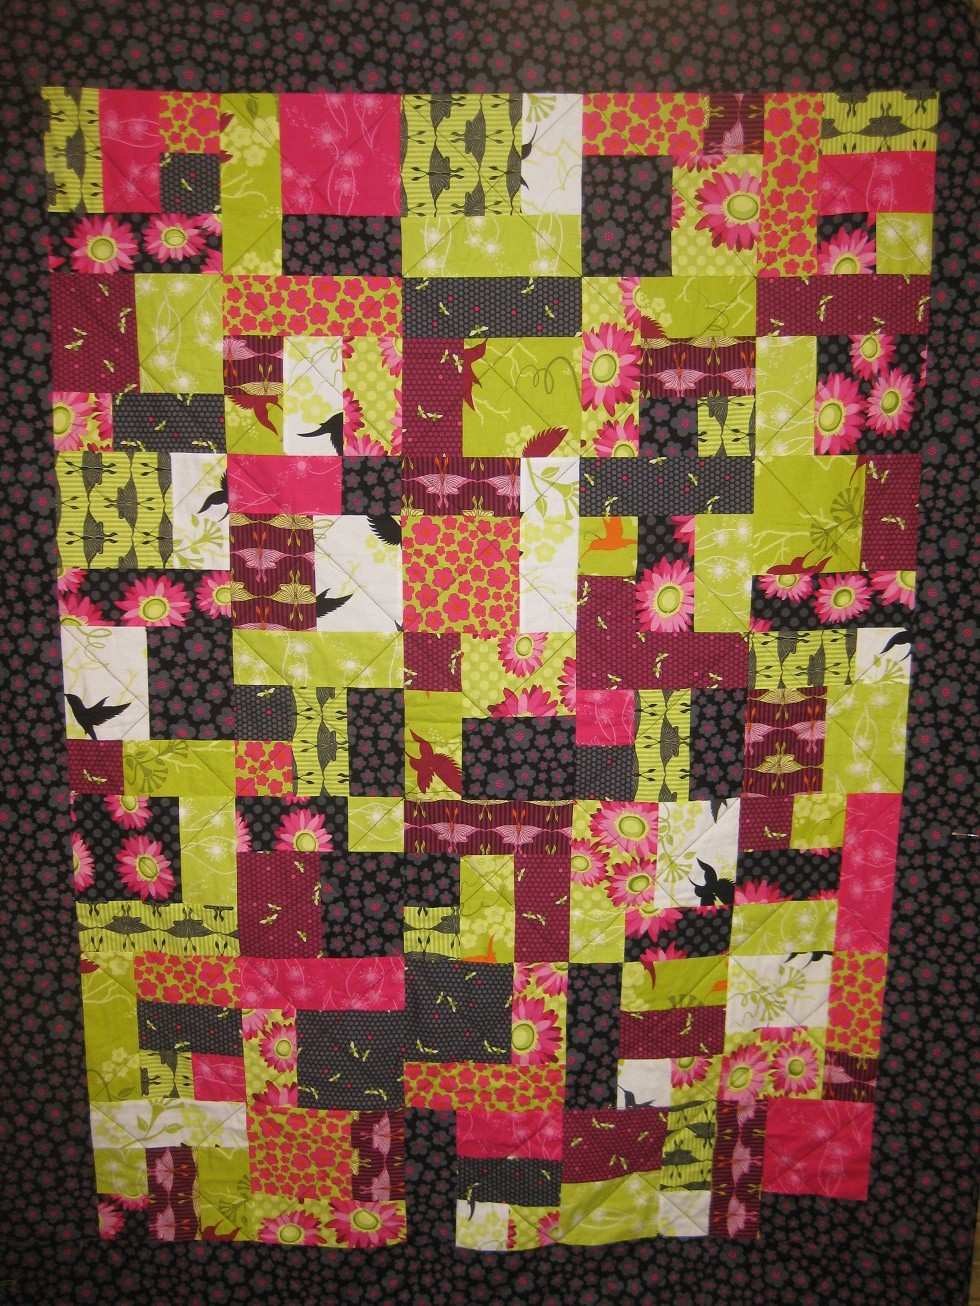 Free Quilt Pattern For Yellow Brick Road : Brick Box Image: Free Yellow Brick Road Quilt Pattern